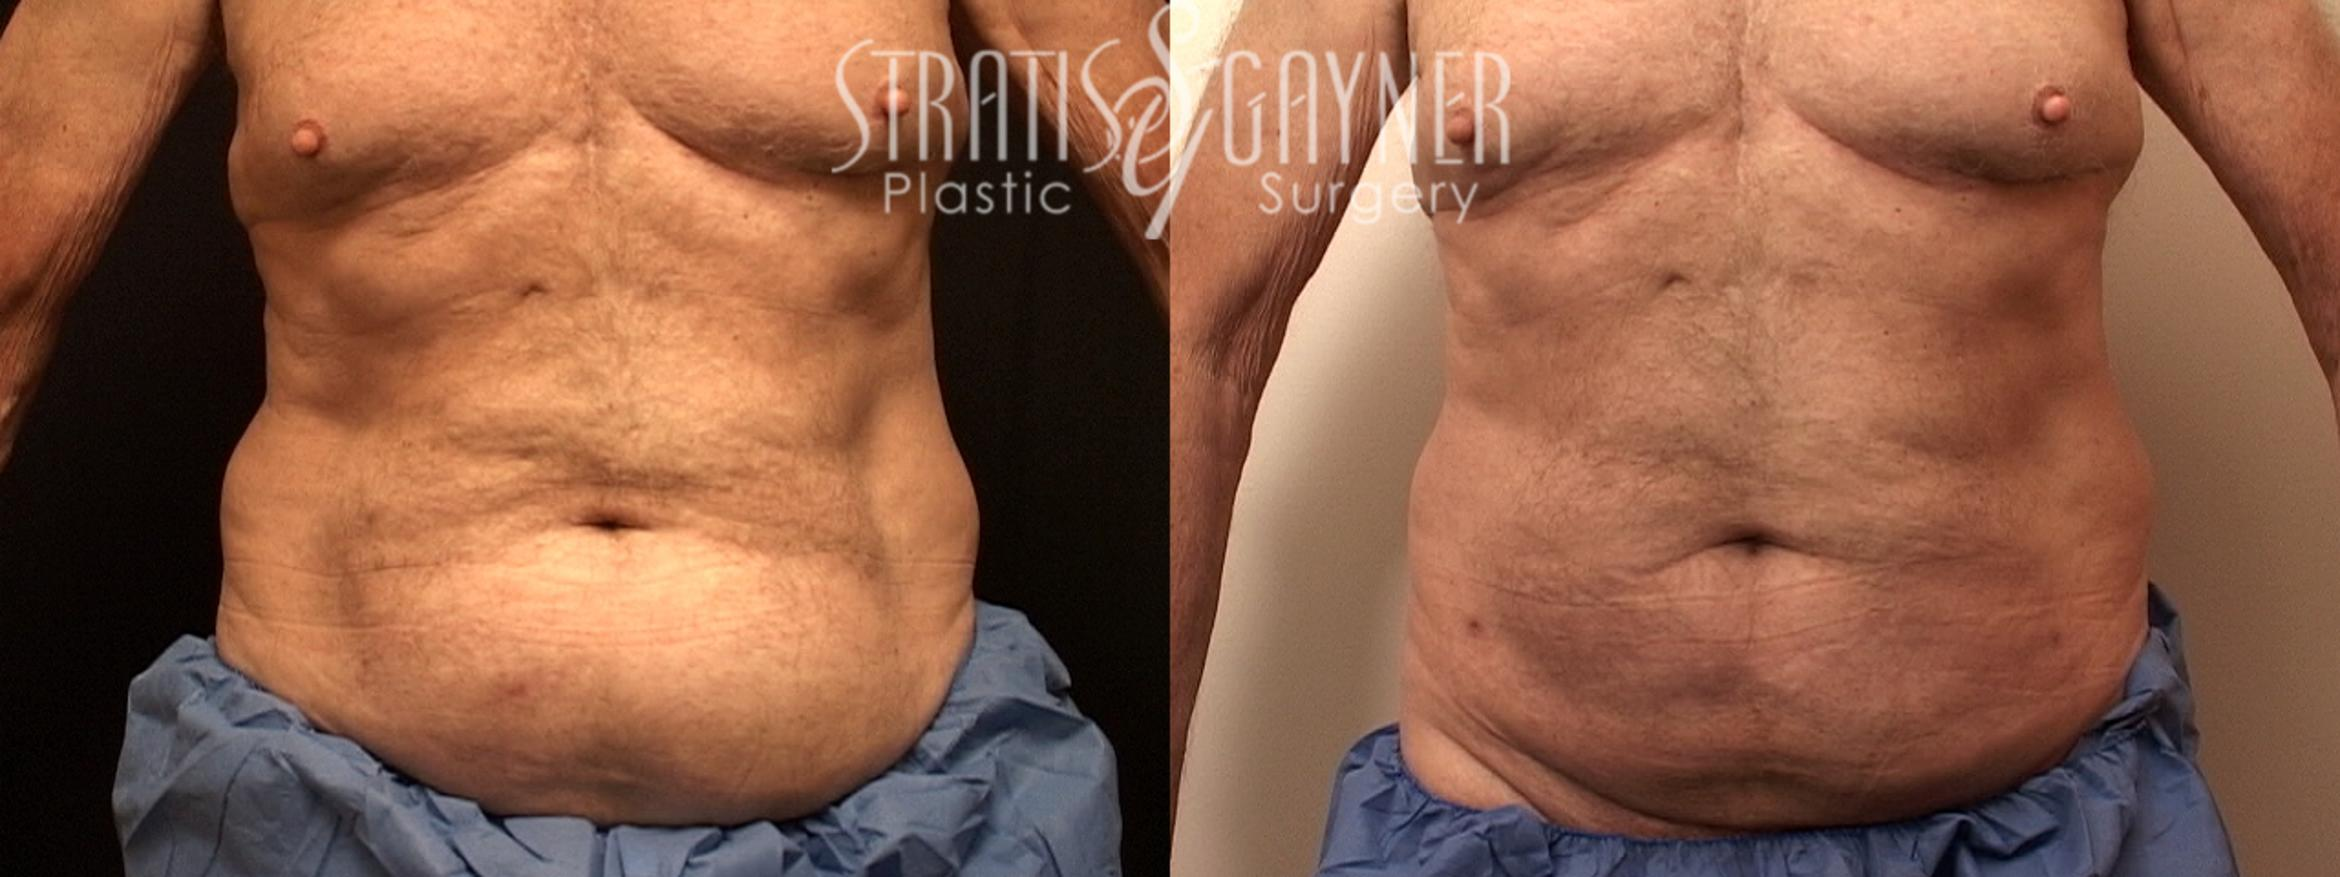 Liposuction Case 127 Before & After View #1 | Harrisburg, PA | Stratis Gayner Plastic Surgery